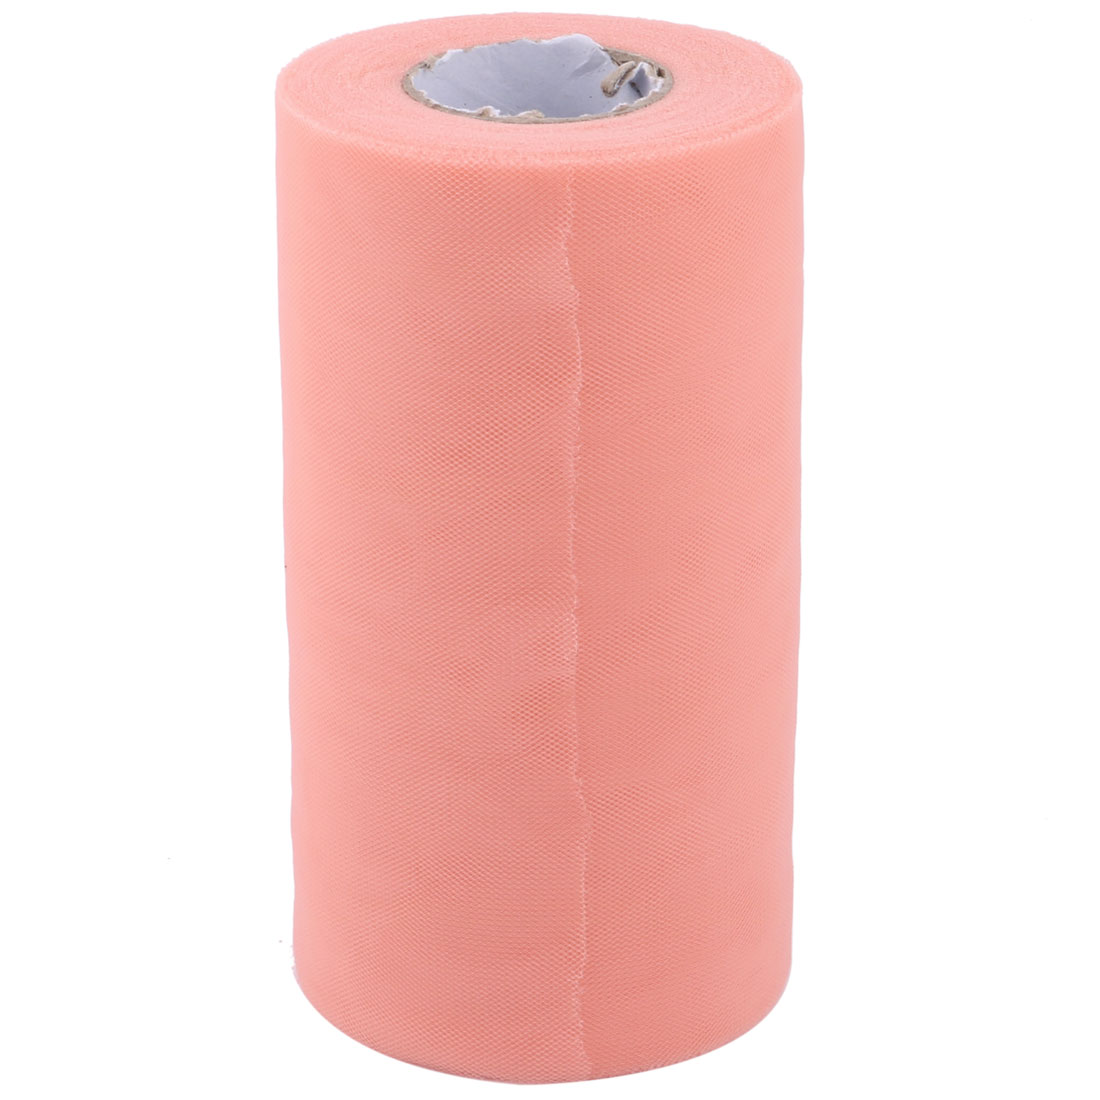 Party DIY Handcraft Chair Decor Tulle Spool Roll Coral Pink 6 Inch x 50 Yards